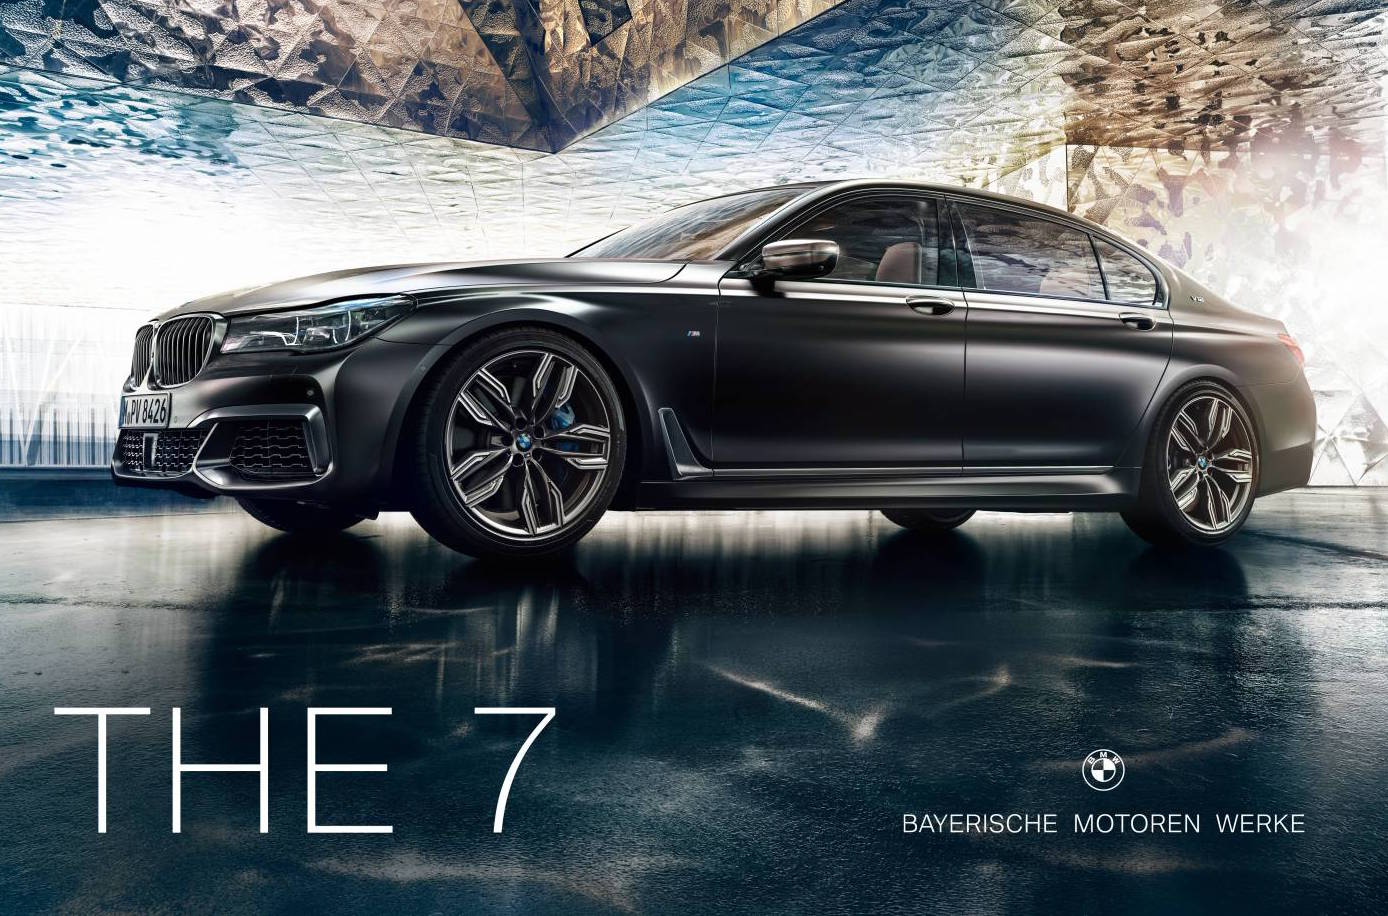 Cars To Be Included In This Exclusive Branding Are The BMW 7 Series Along With Upcoming X7 SUV New 8 Coupe And I8 Roadster